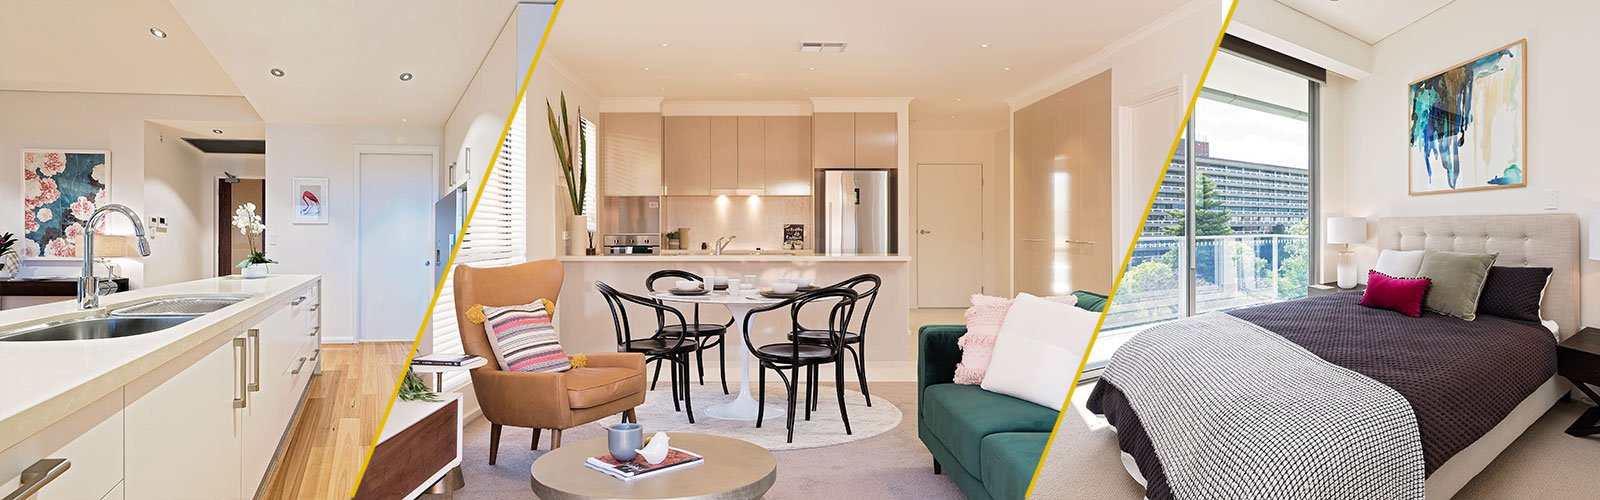 Book a Personal Tour at a Living Choice Retirement Village